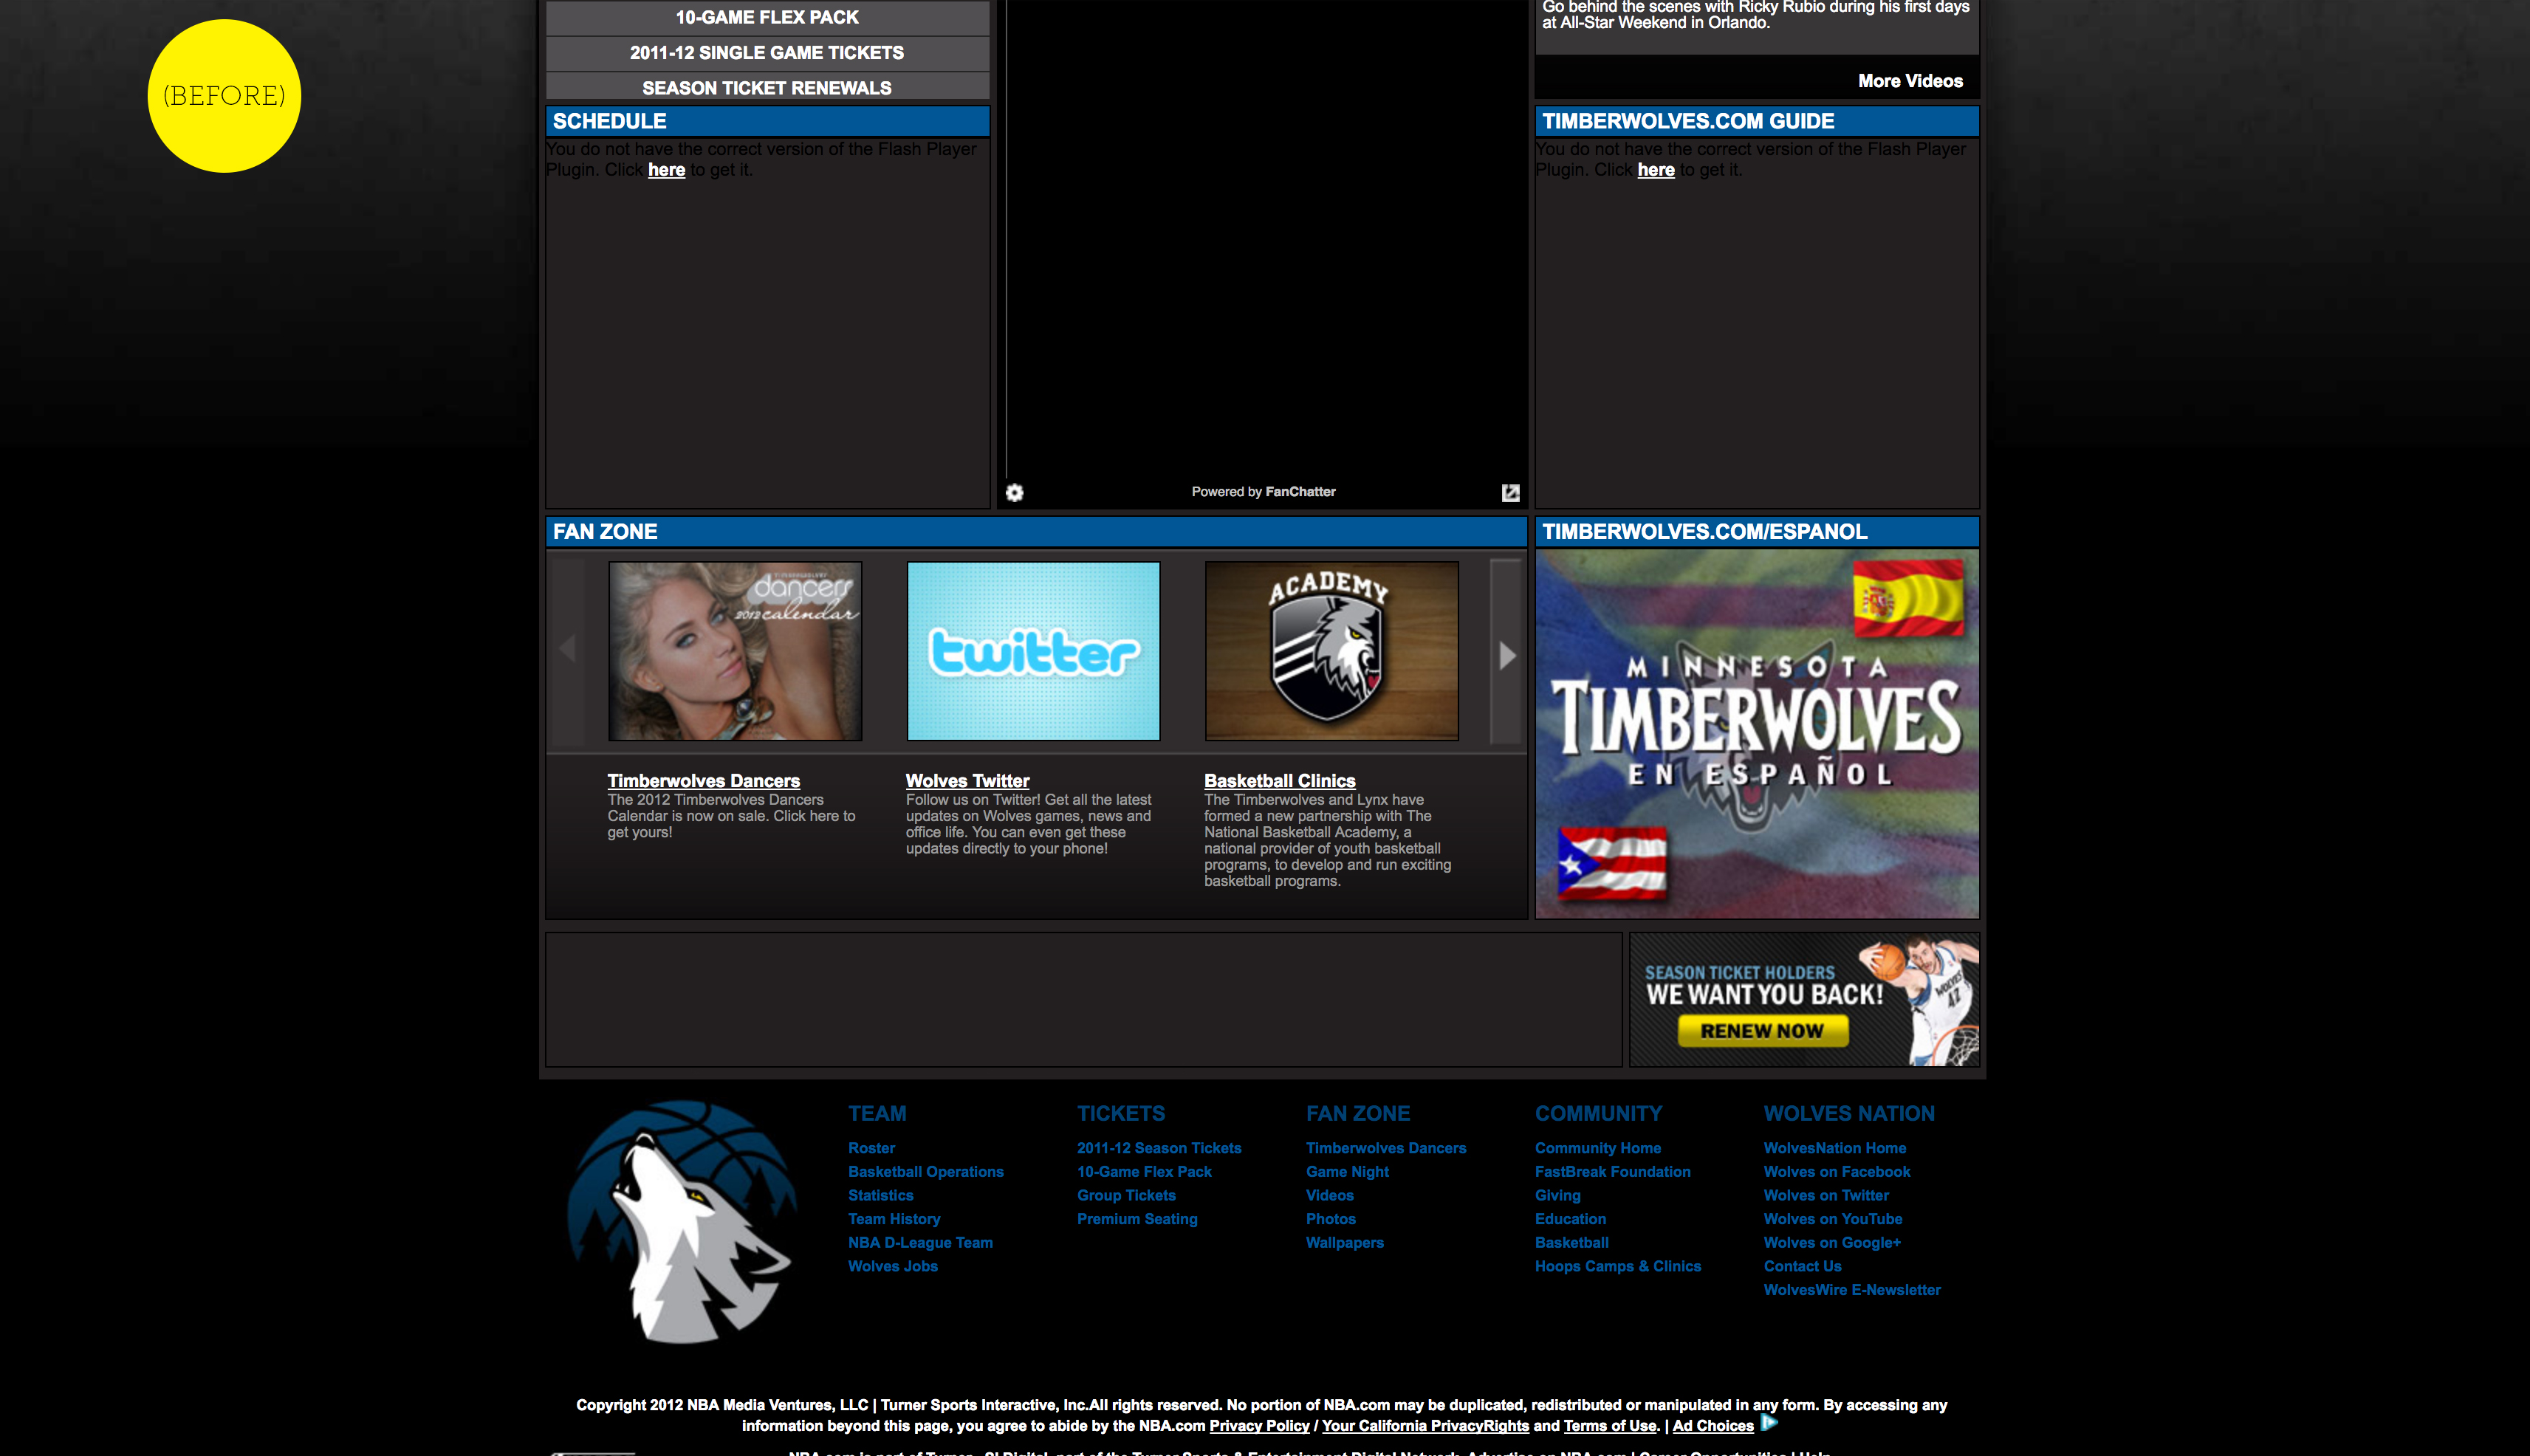 BEFORE REDESIGN: Timberwolves Home Page, Desktop